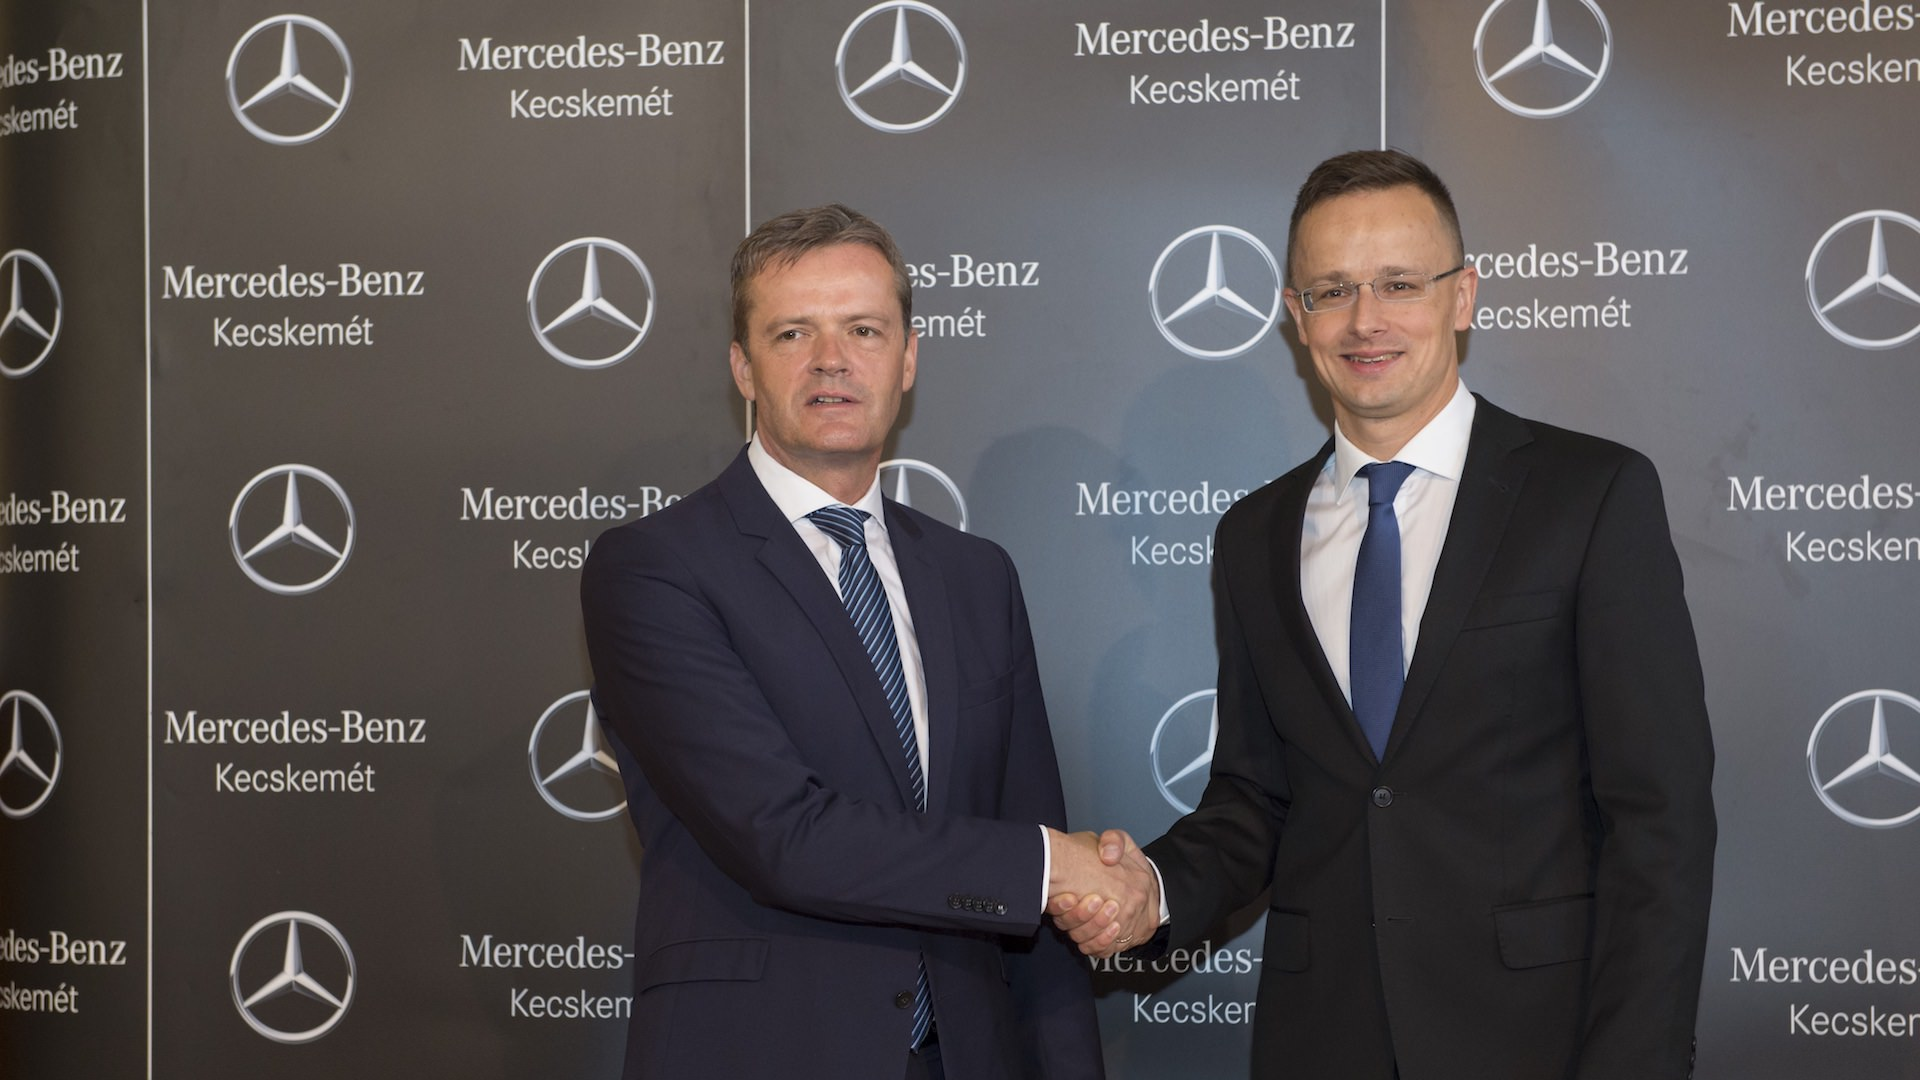 The new Mercedes-Benz plant in Kecskemét is the largest greenfield investment ever made in Hungary